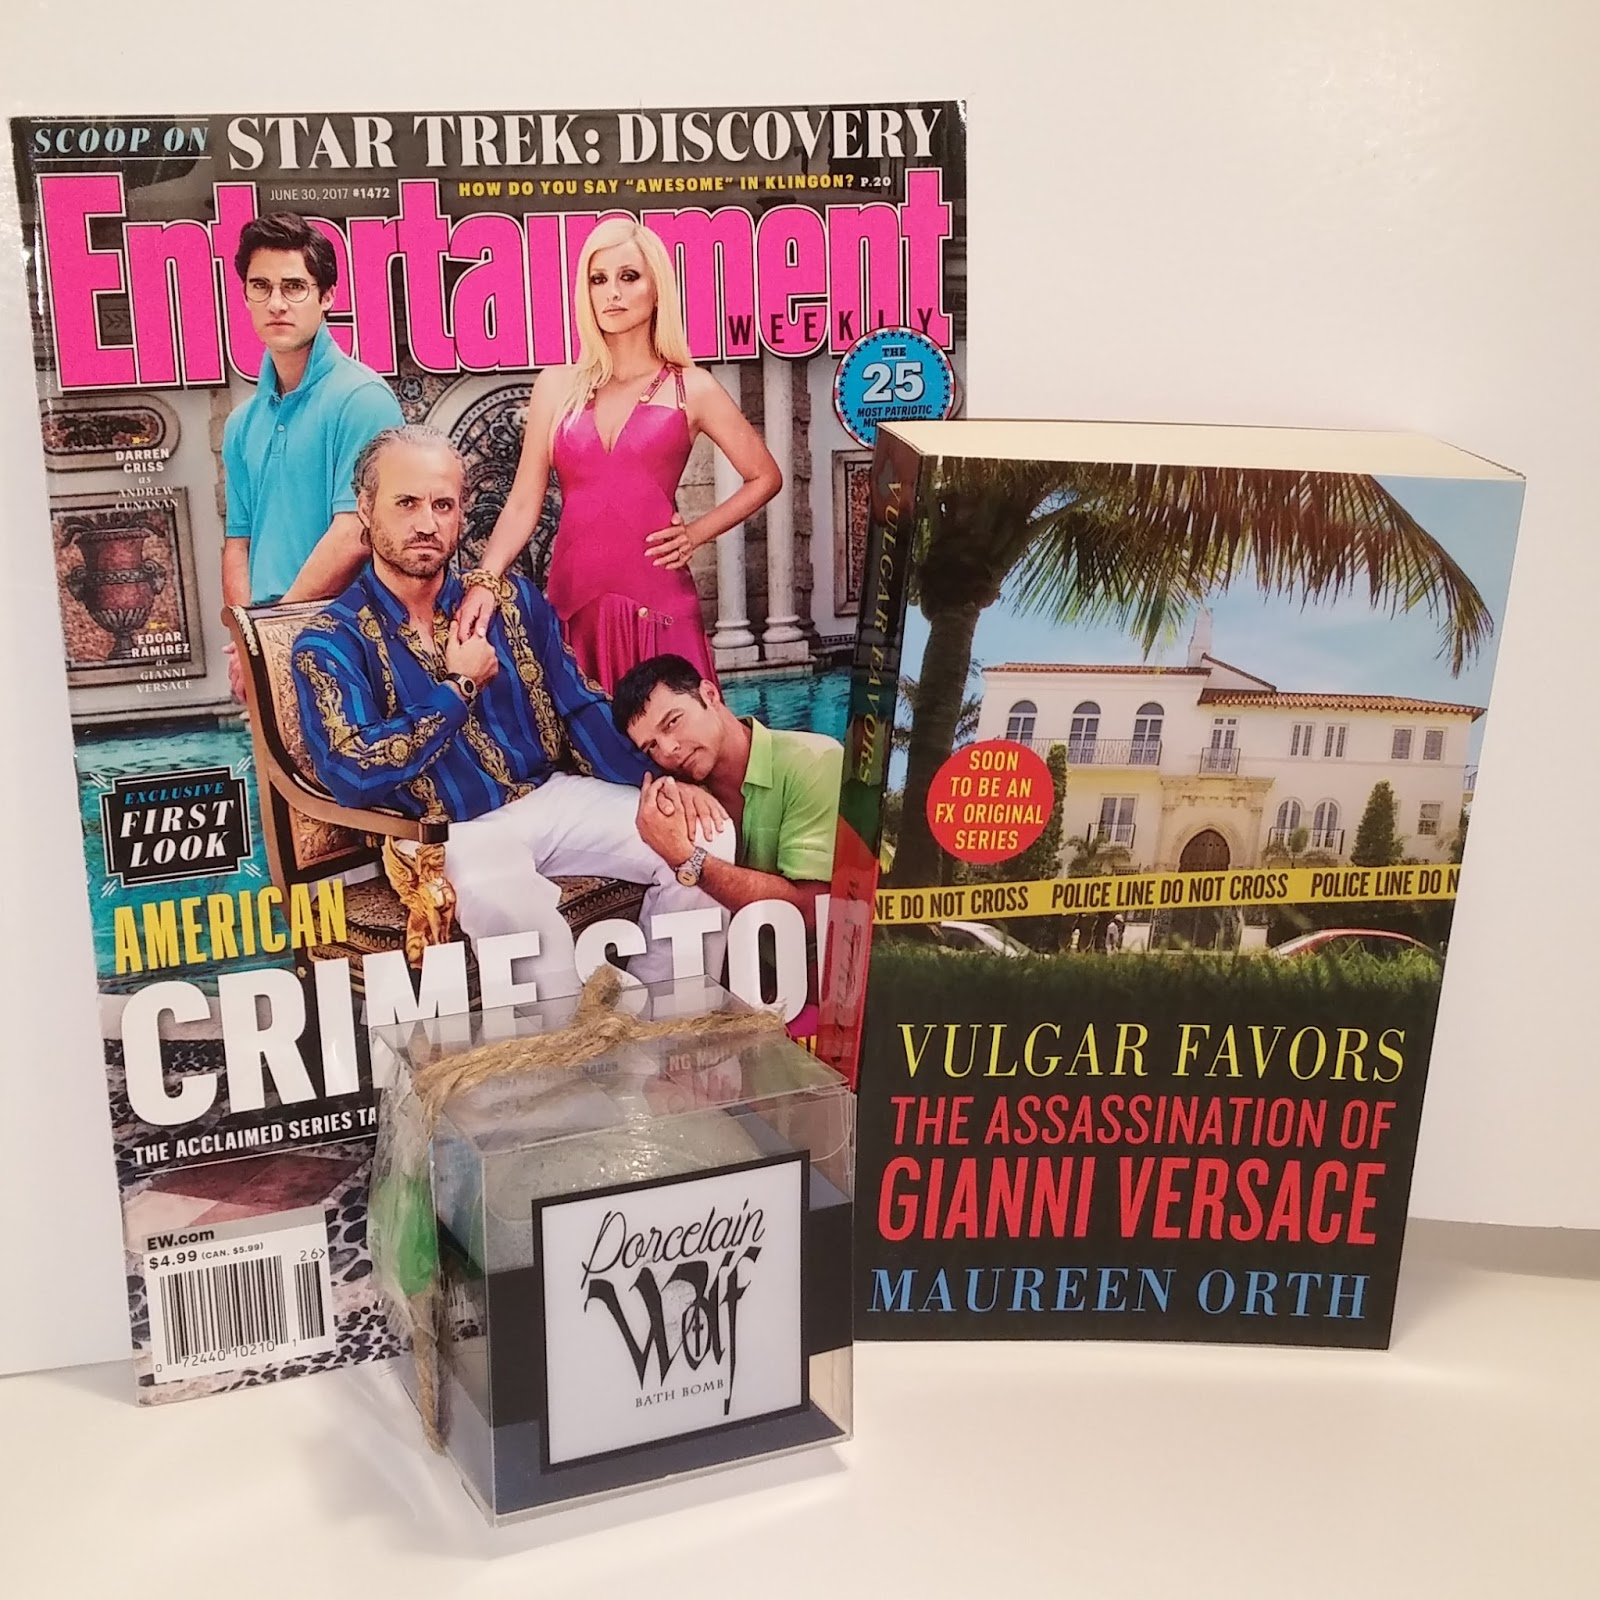 d47a4bcc4 Vulgar Favors: Andrew Cunanan, Gianni Versace, and the Largest Failed  Manhunt in U.S. History by Maureen Orth (goodreads)